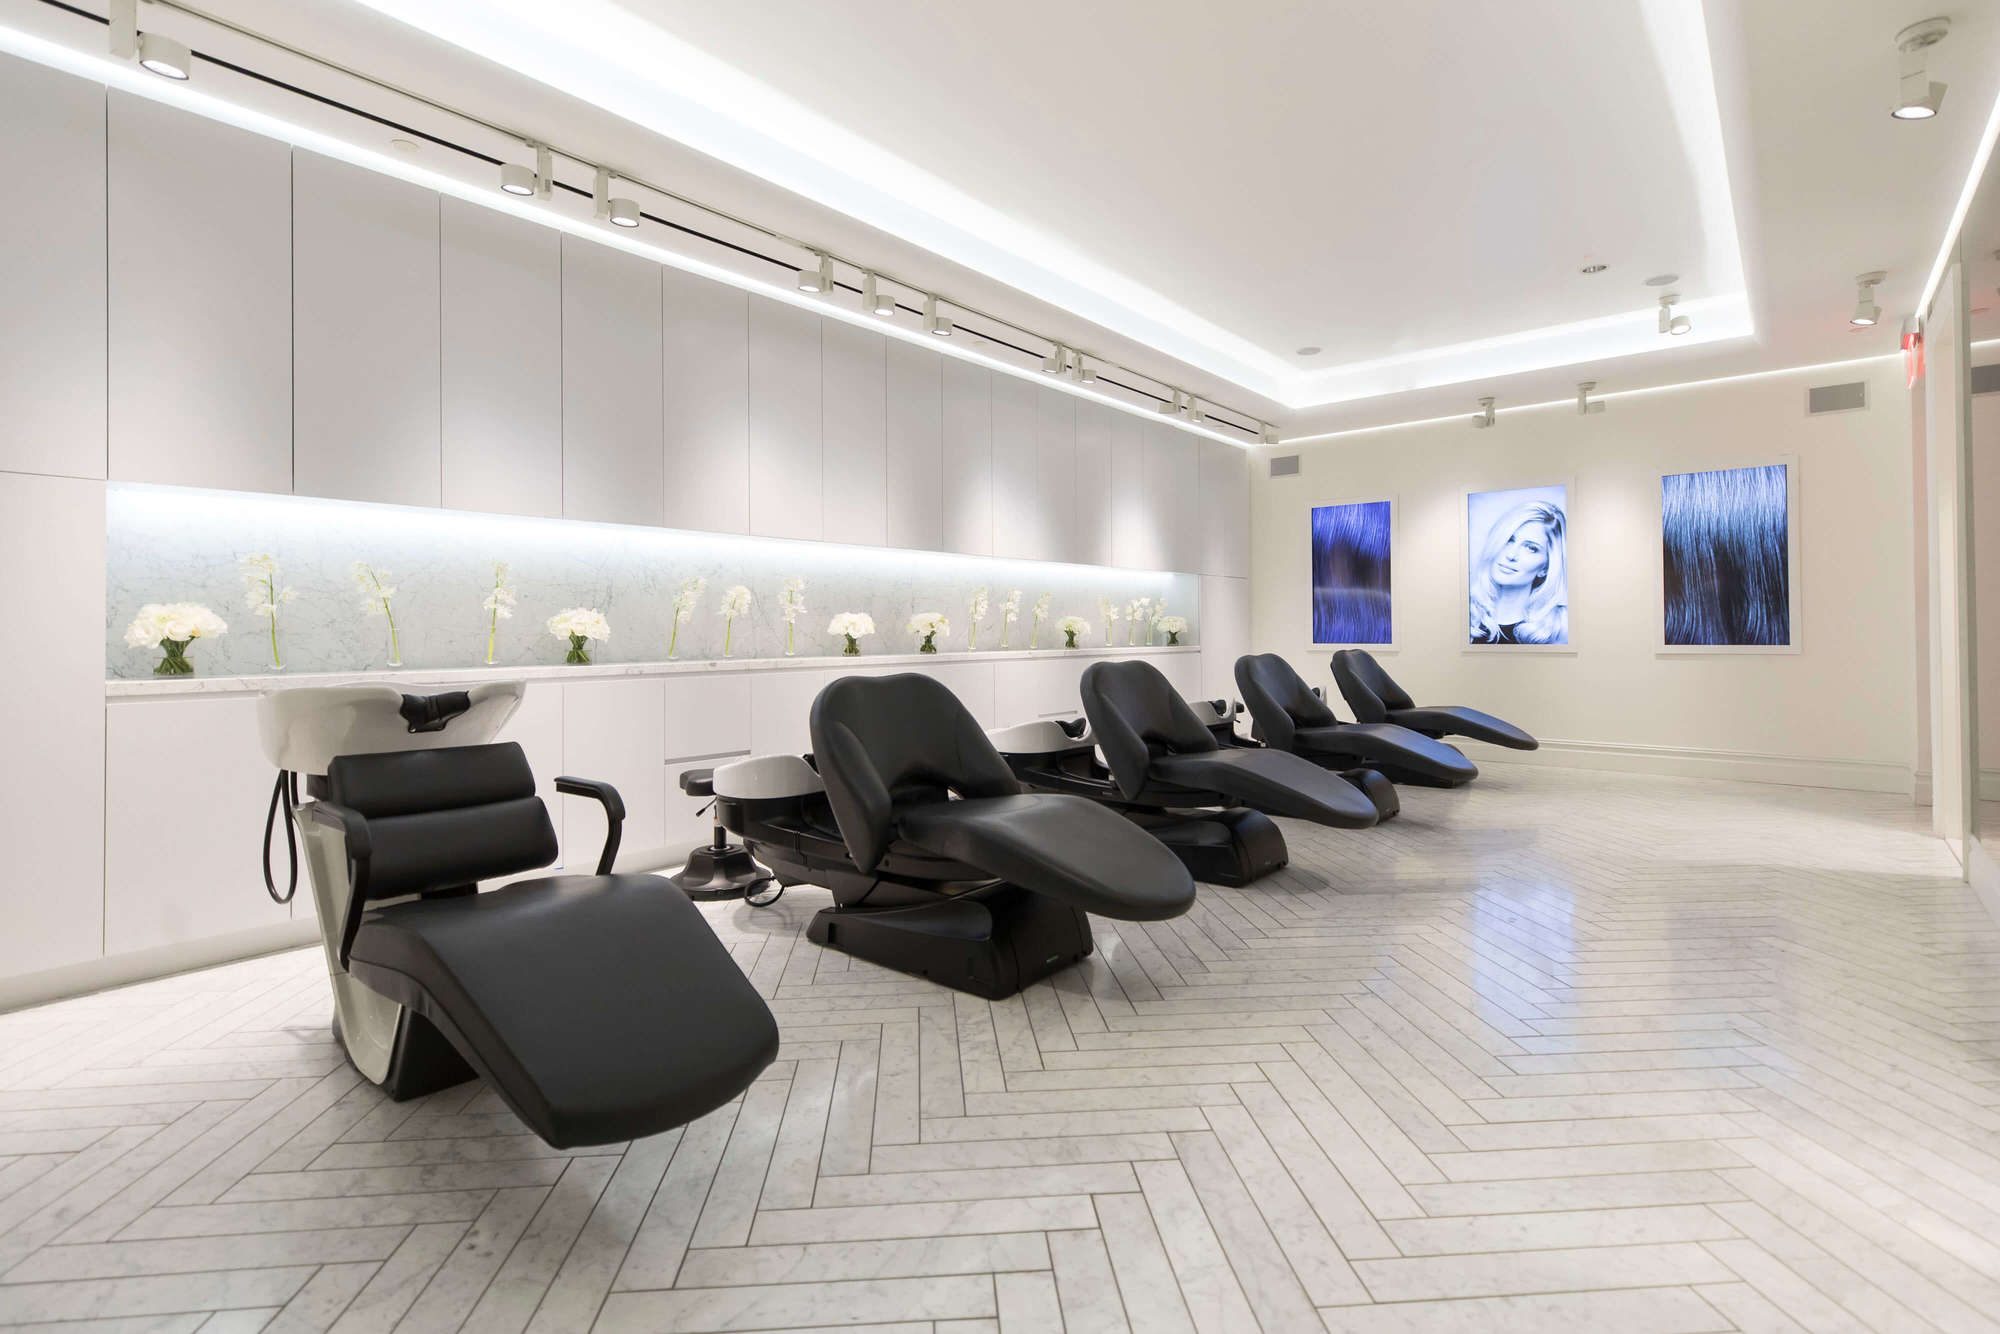 nexxus tribeca salon: washing hair